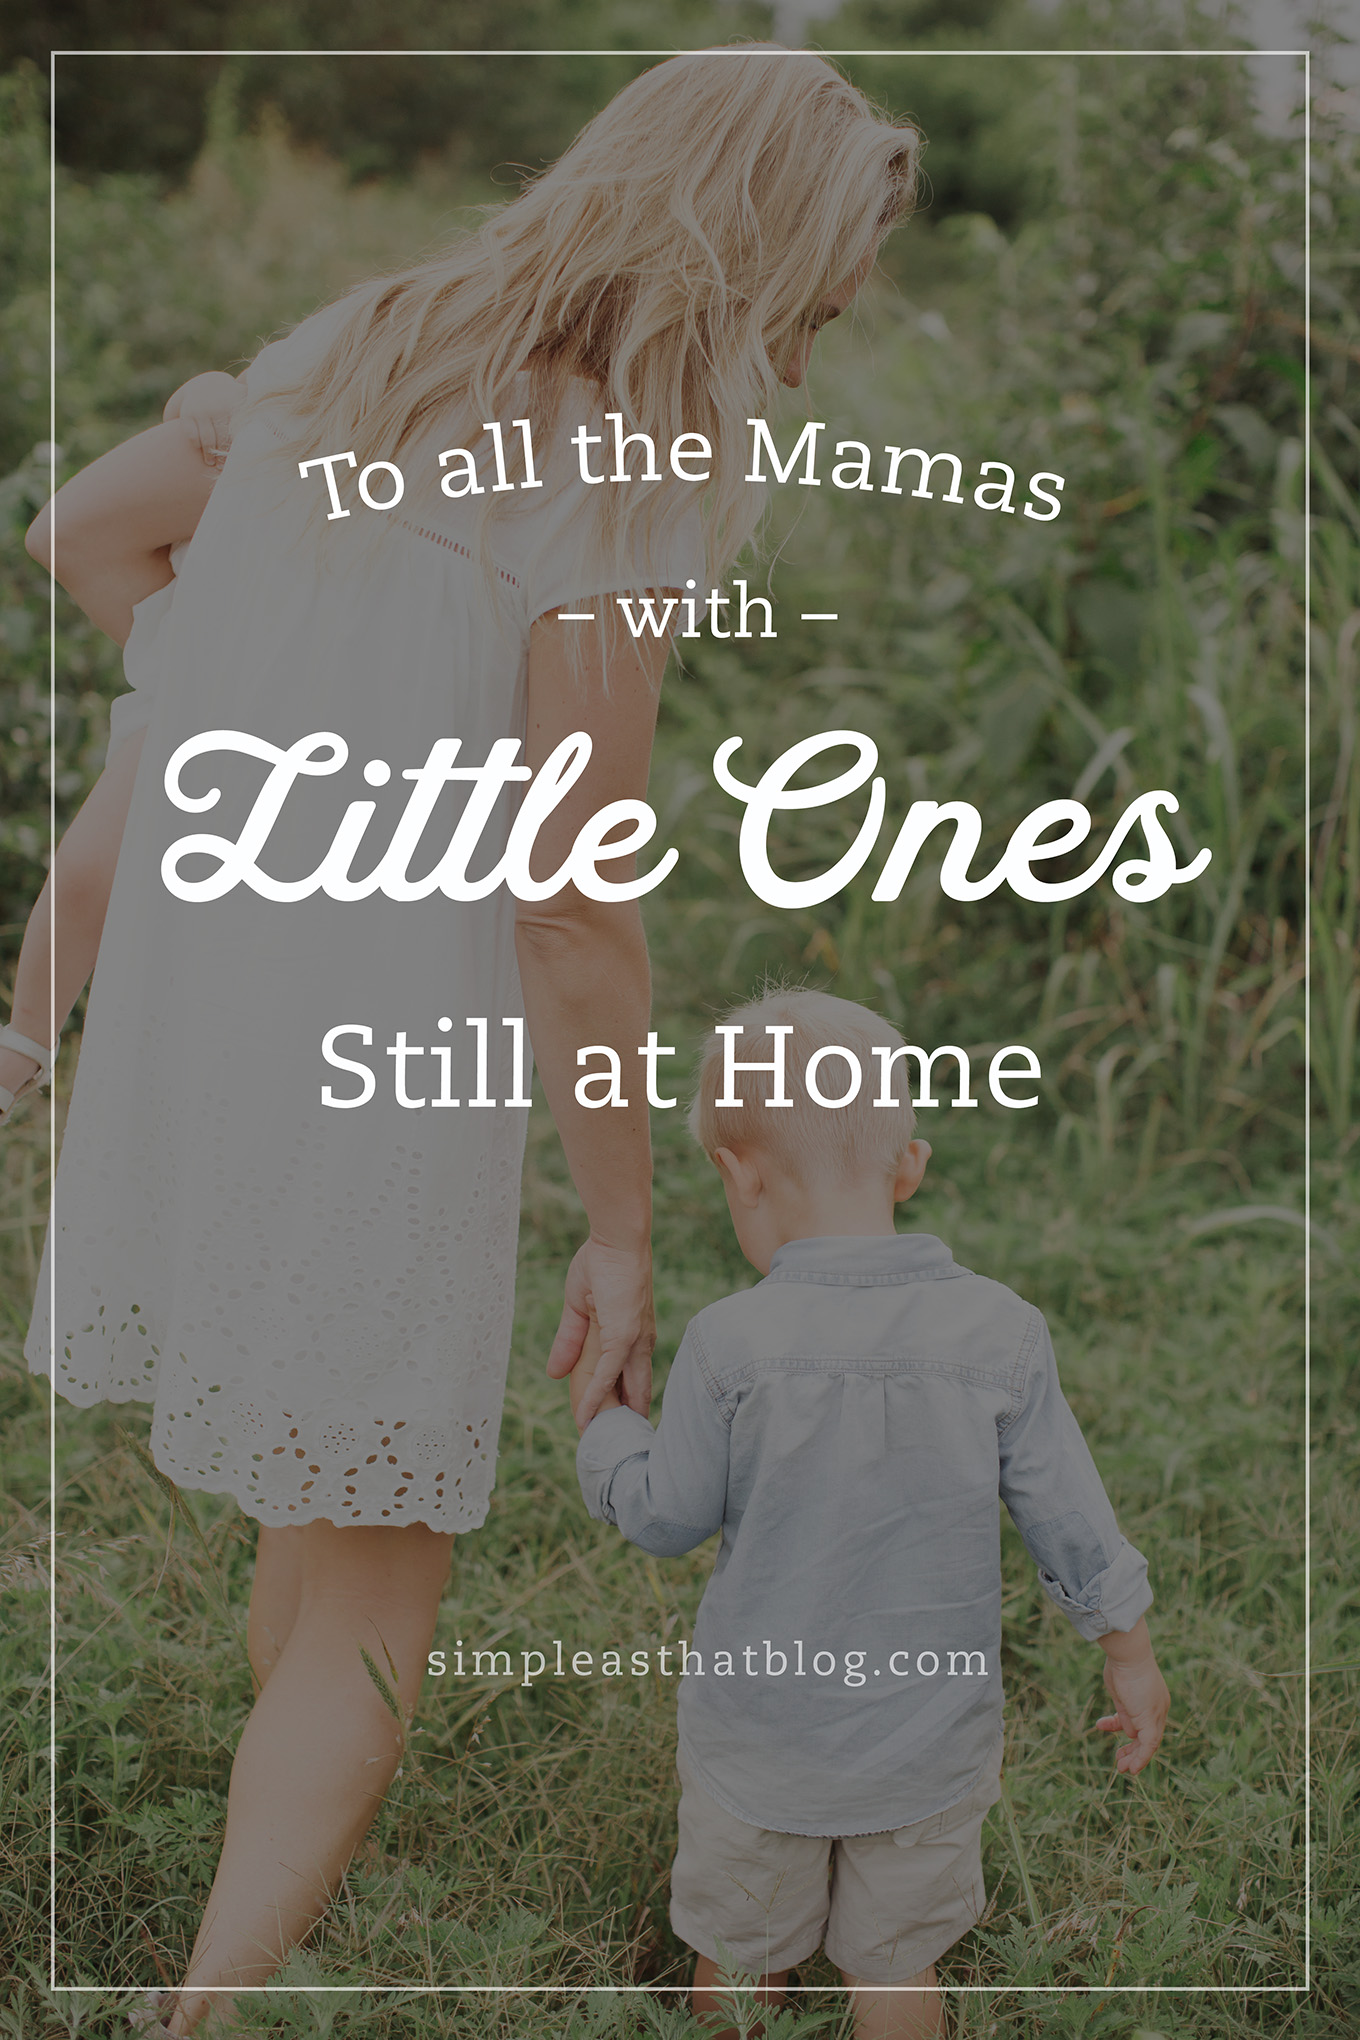 To all the Mamas with little ones still at home – please please please do not compare your home, your schedule, your crazy with any of us mamas whose littlest one is in school.